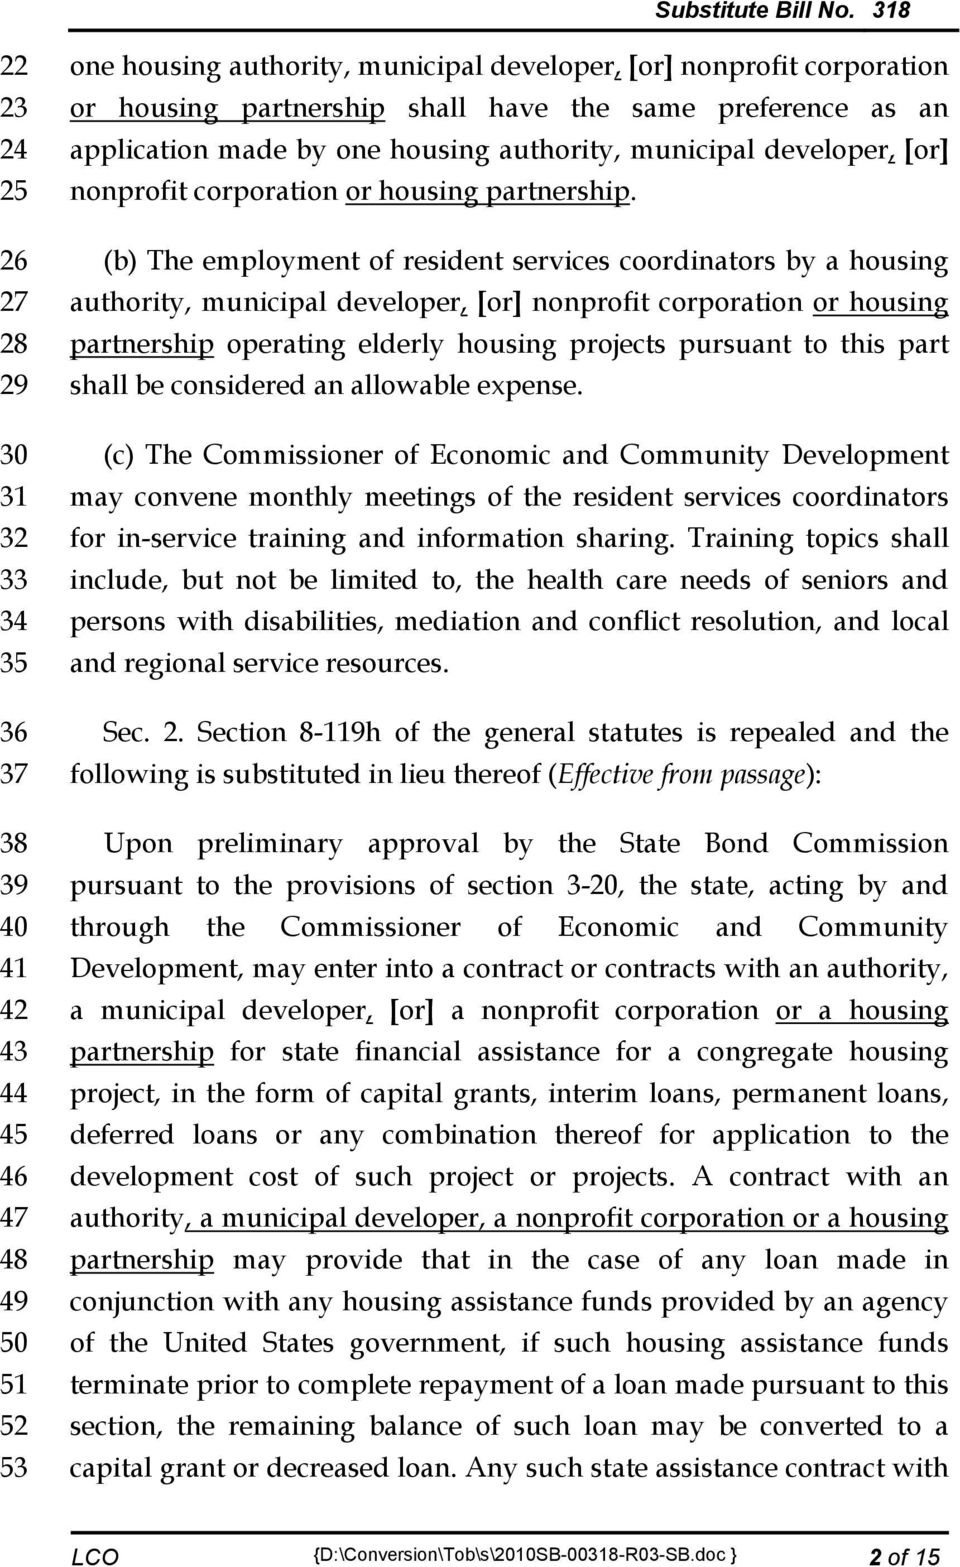 (b) The employment of resident services coordinators by a housing authority, municipal developer, [or] nonprofit corporation or housing partnership operating elderly housing projects pursuant to this